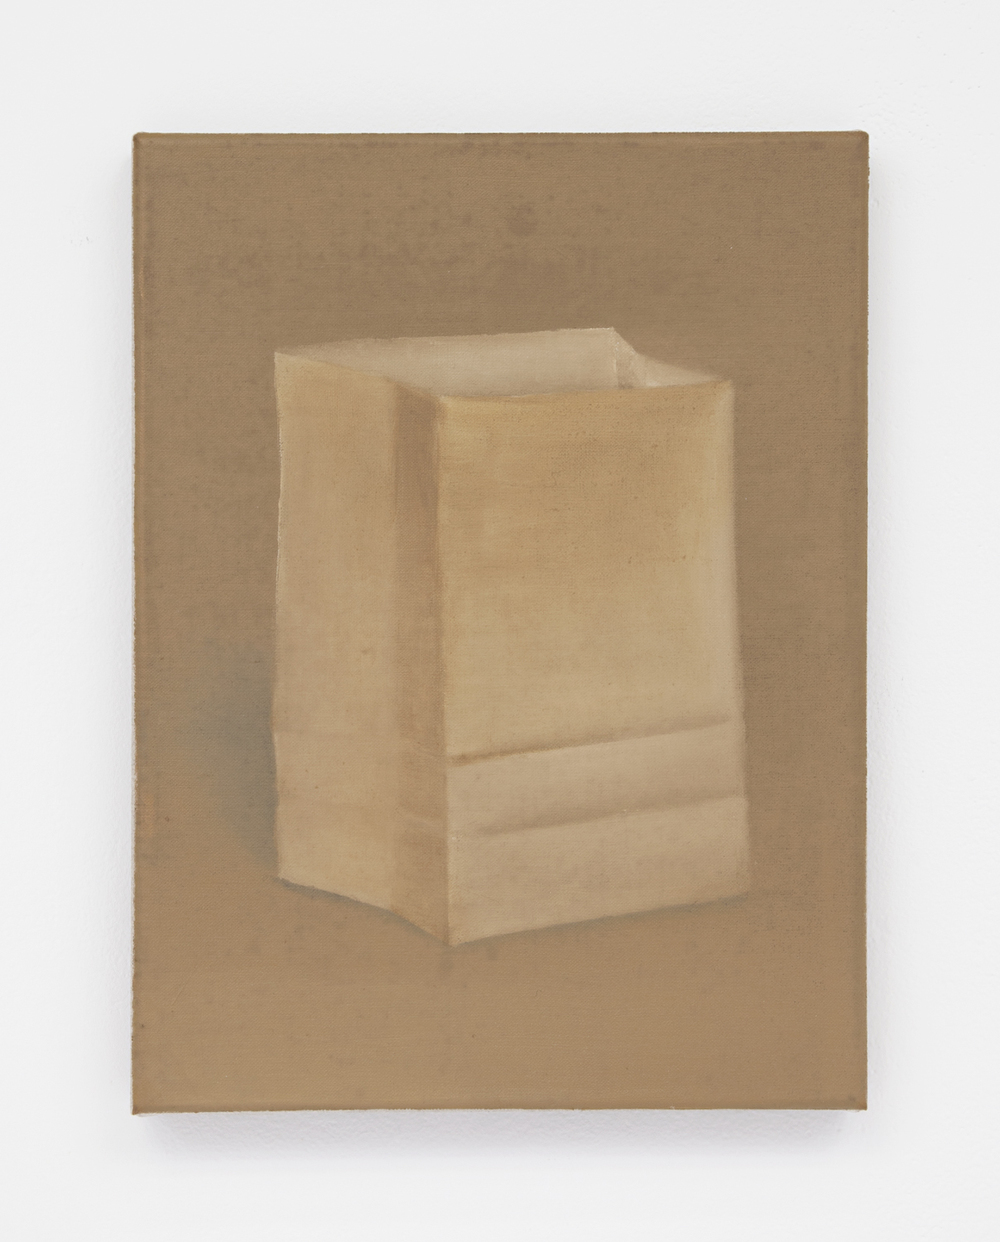 Brown bag, 2016 Oil on linen 12 x 9 inches